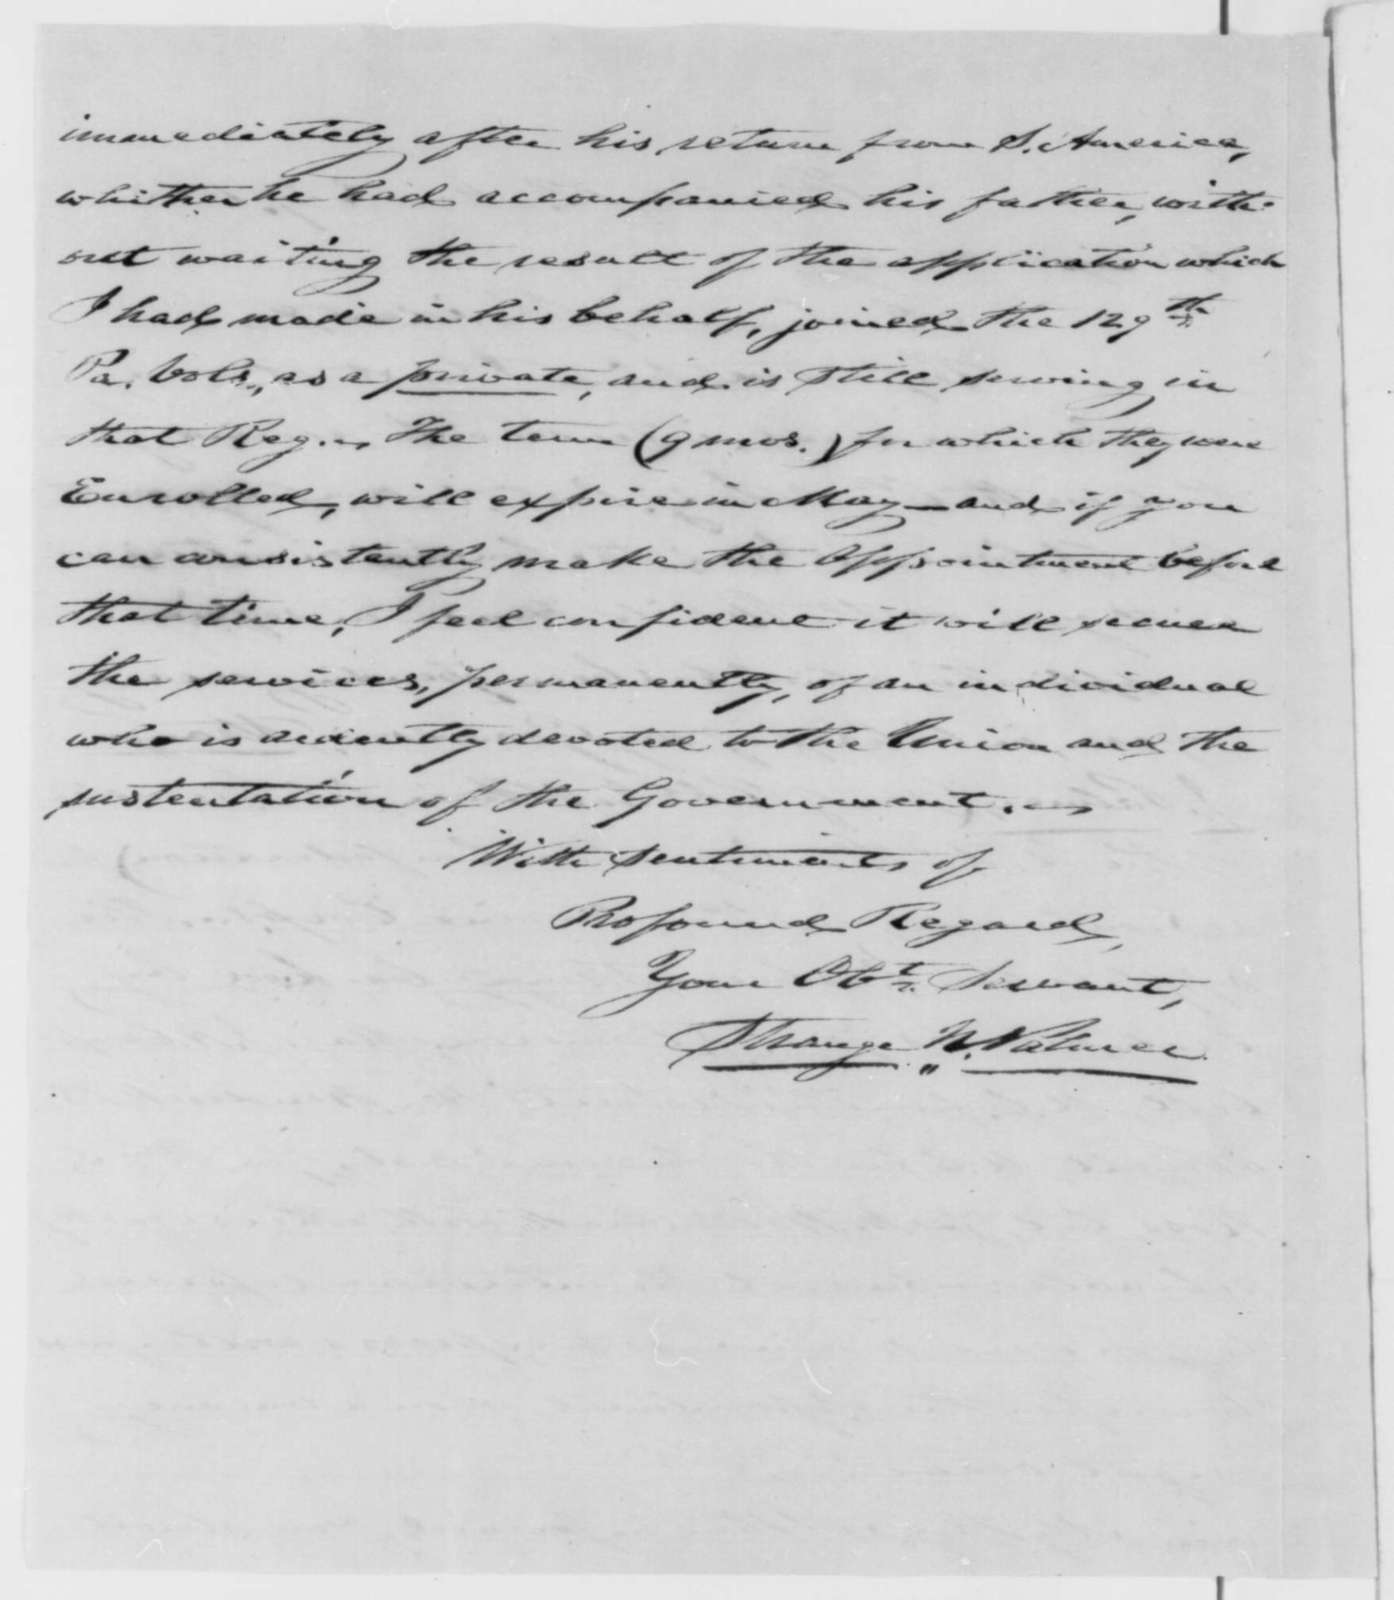 Strange N. Palmer to Abraham Lincoln, Friday, March 27, 1863  (Seeks commission for his grandson)